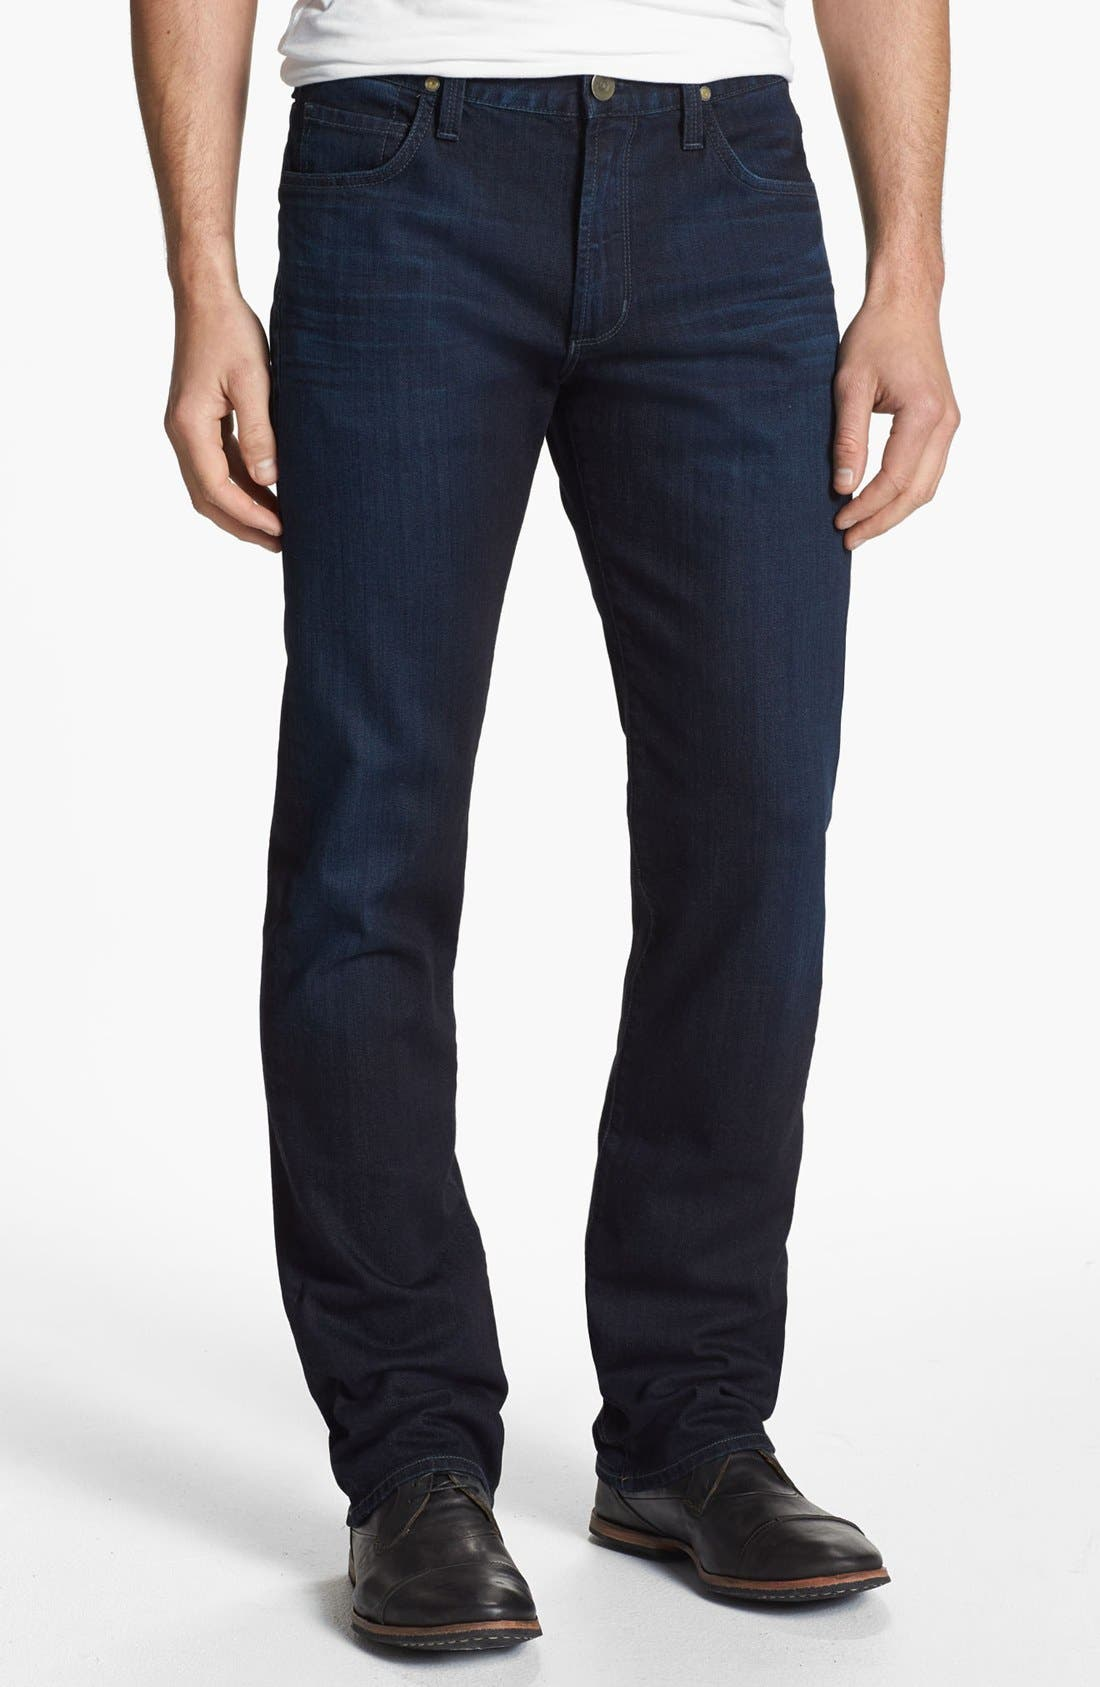 Alternate Image 1 Selected - Citizens of Humanity 'Sid' Straight Leg Jeans (Lawson)